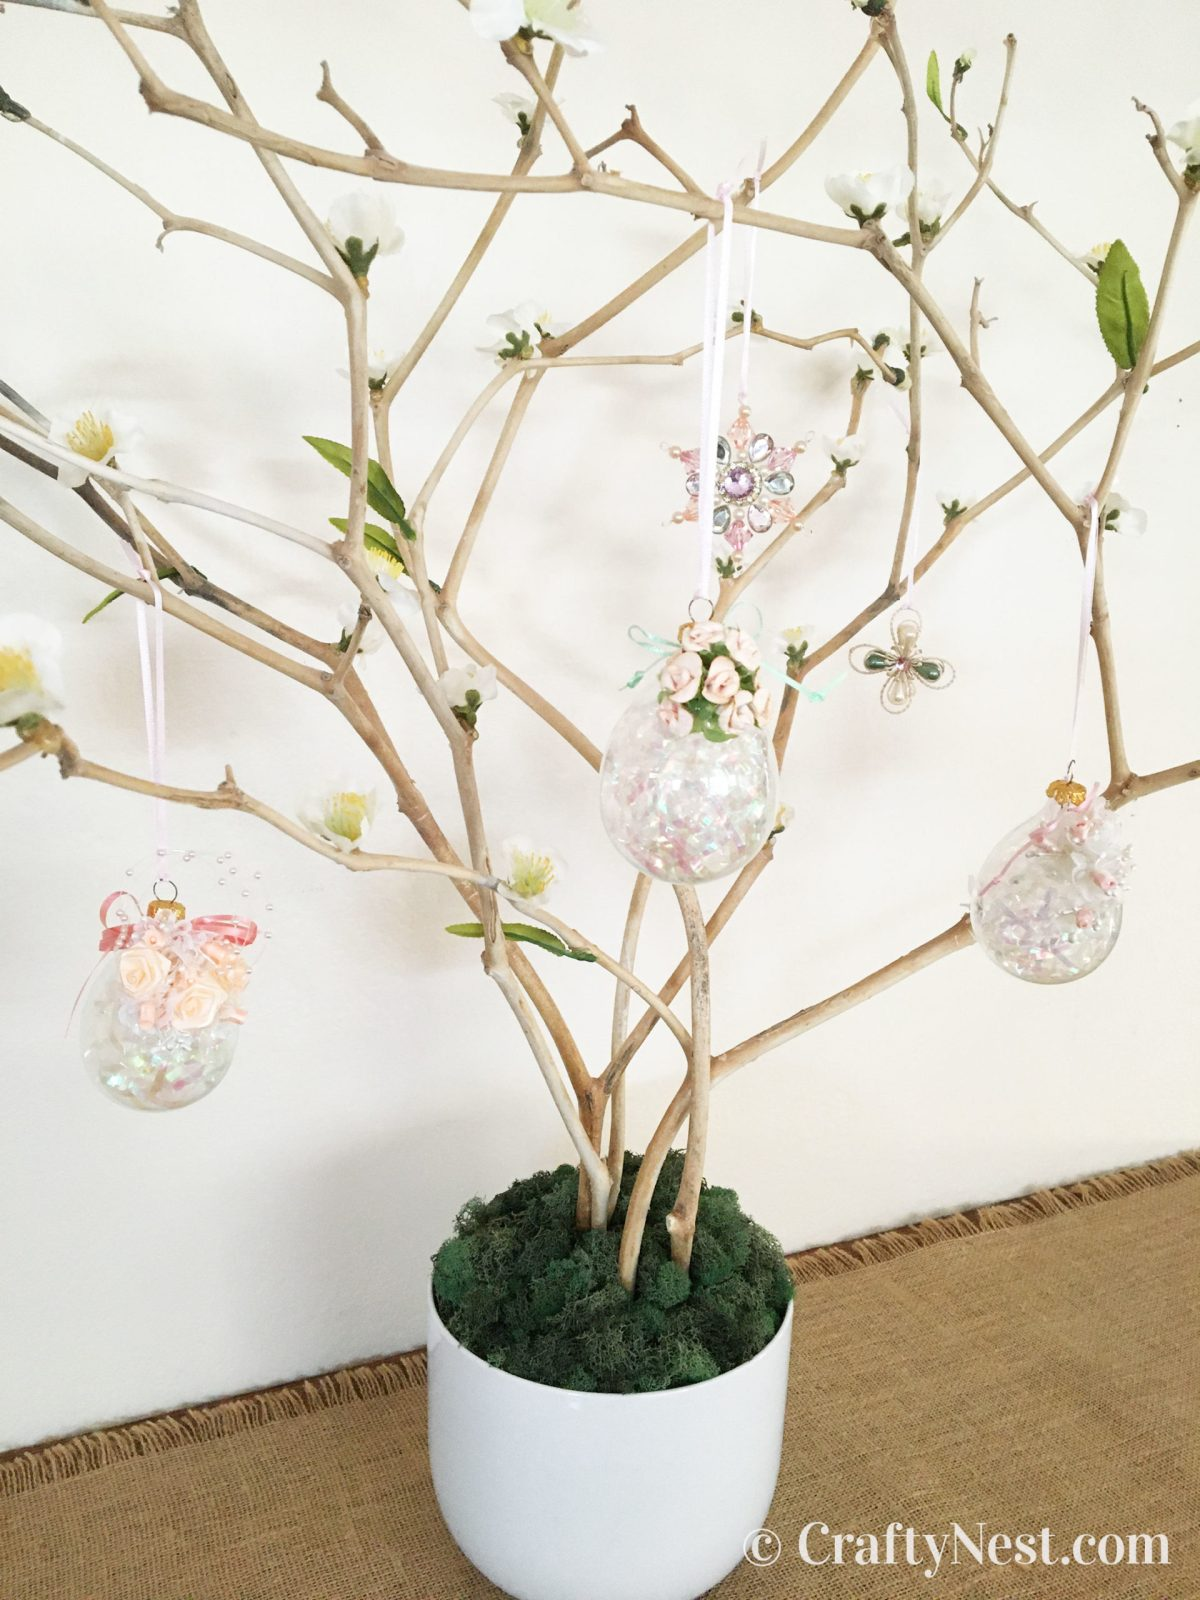 Hang ornaments on the tree, photo